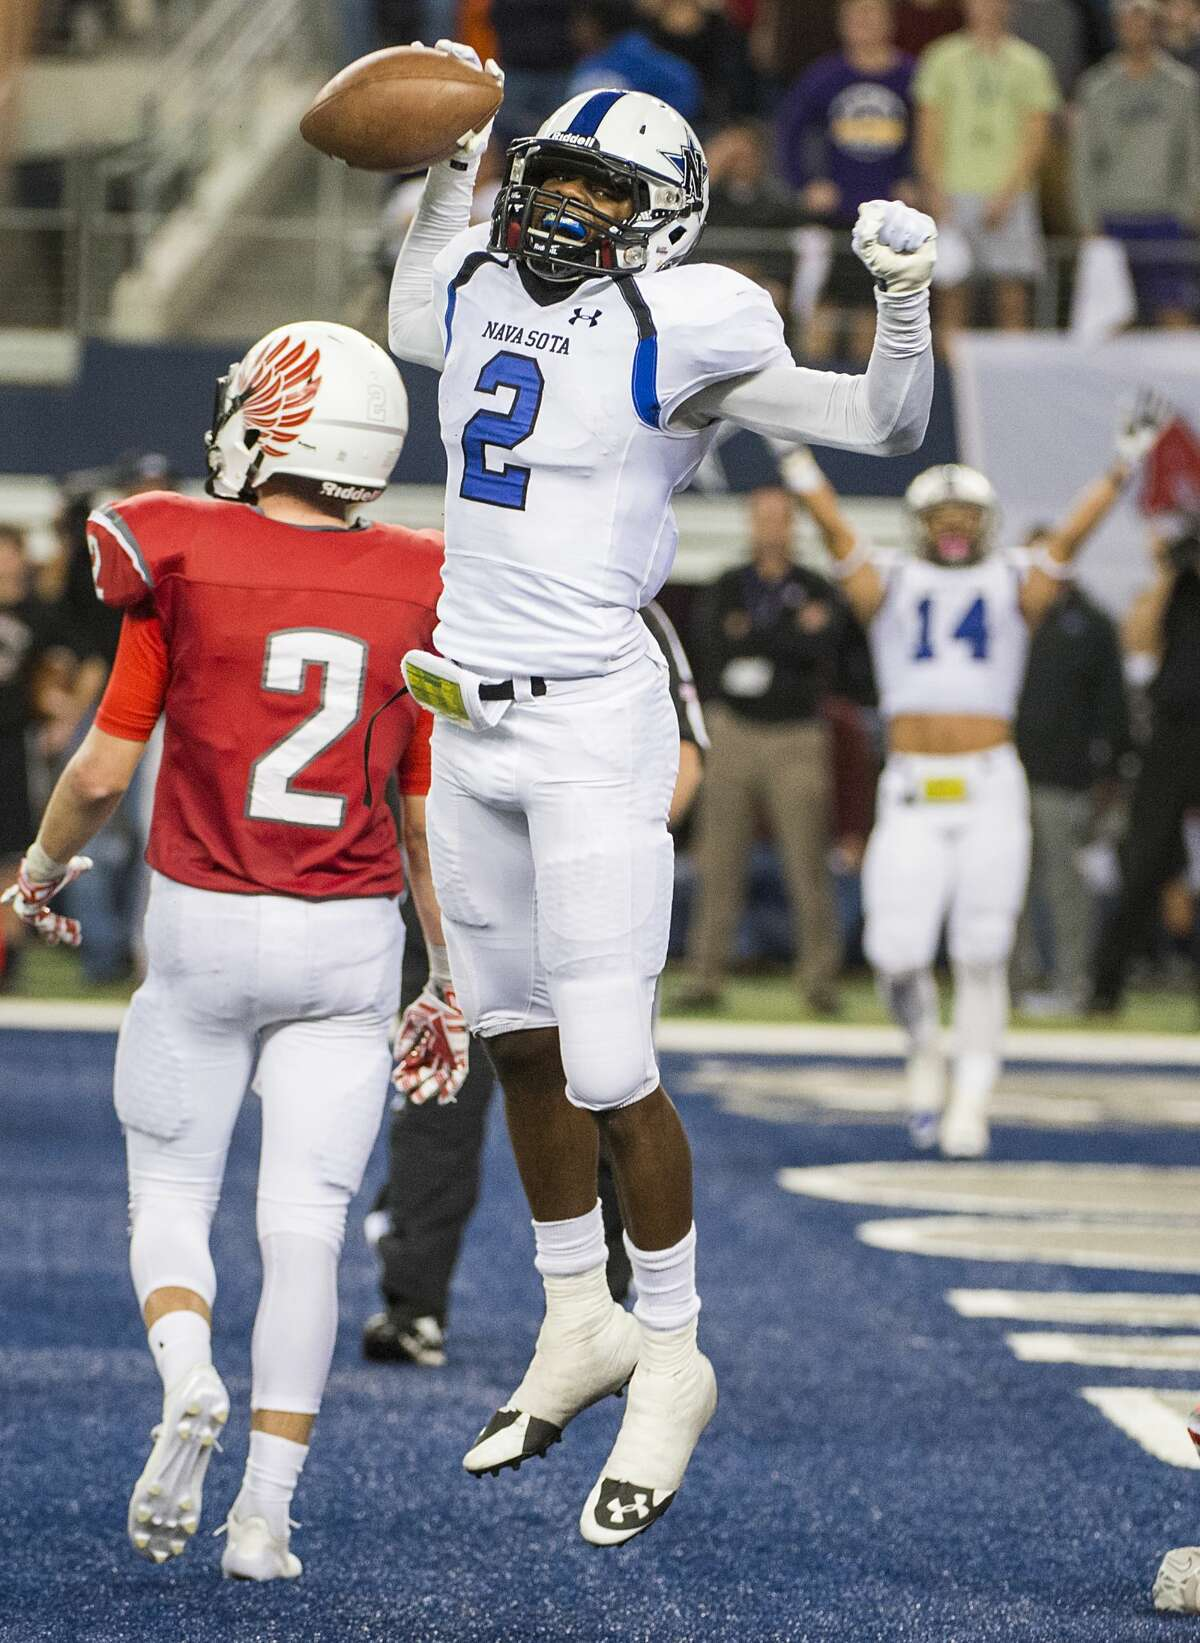 Navasota wide receiver Tren'Davian Dickson (2) celebrates after scoring a touchdown during the second half of the Class 4A Division I state football title game against Argyle at AT&T Stadium Friday, Dec. 19, 2014, in Arlington. ( Smiley N. Pool / Houston Chronicle )